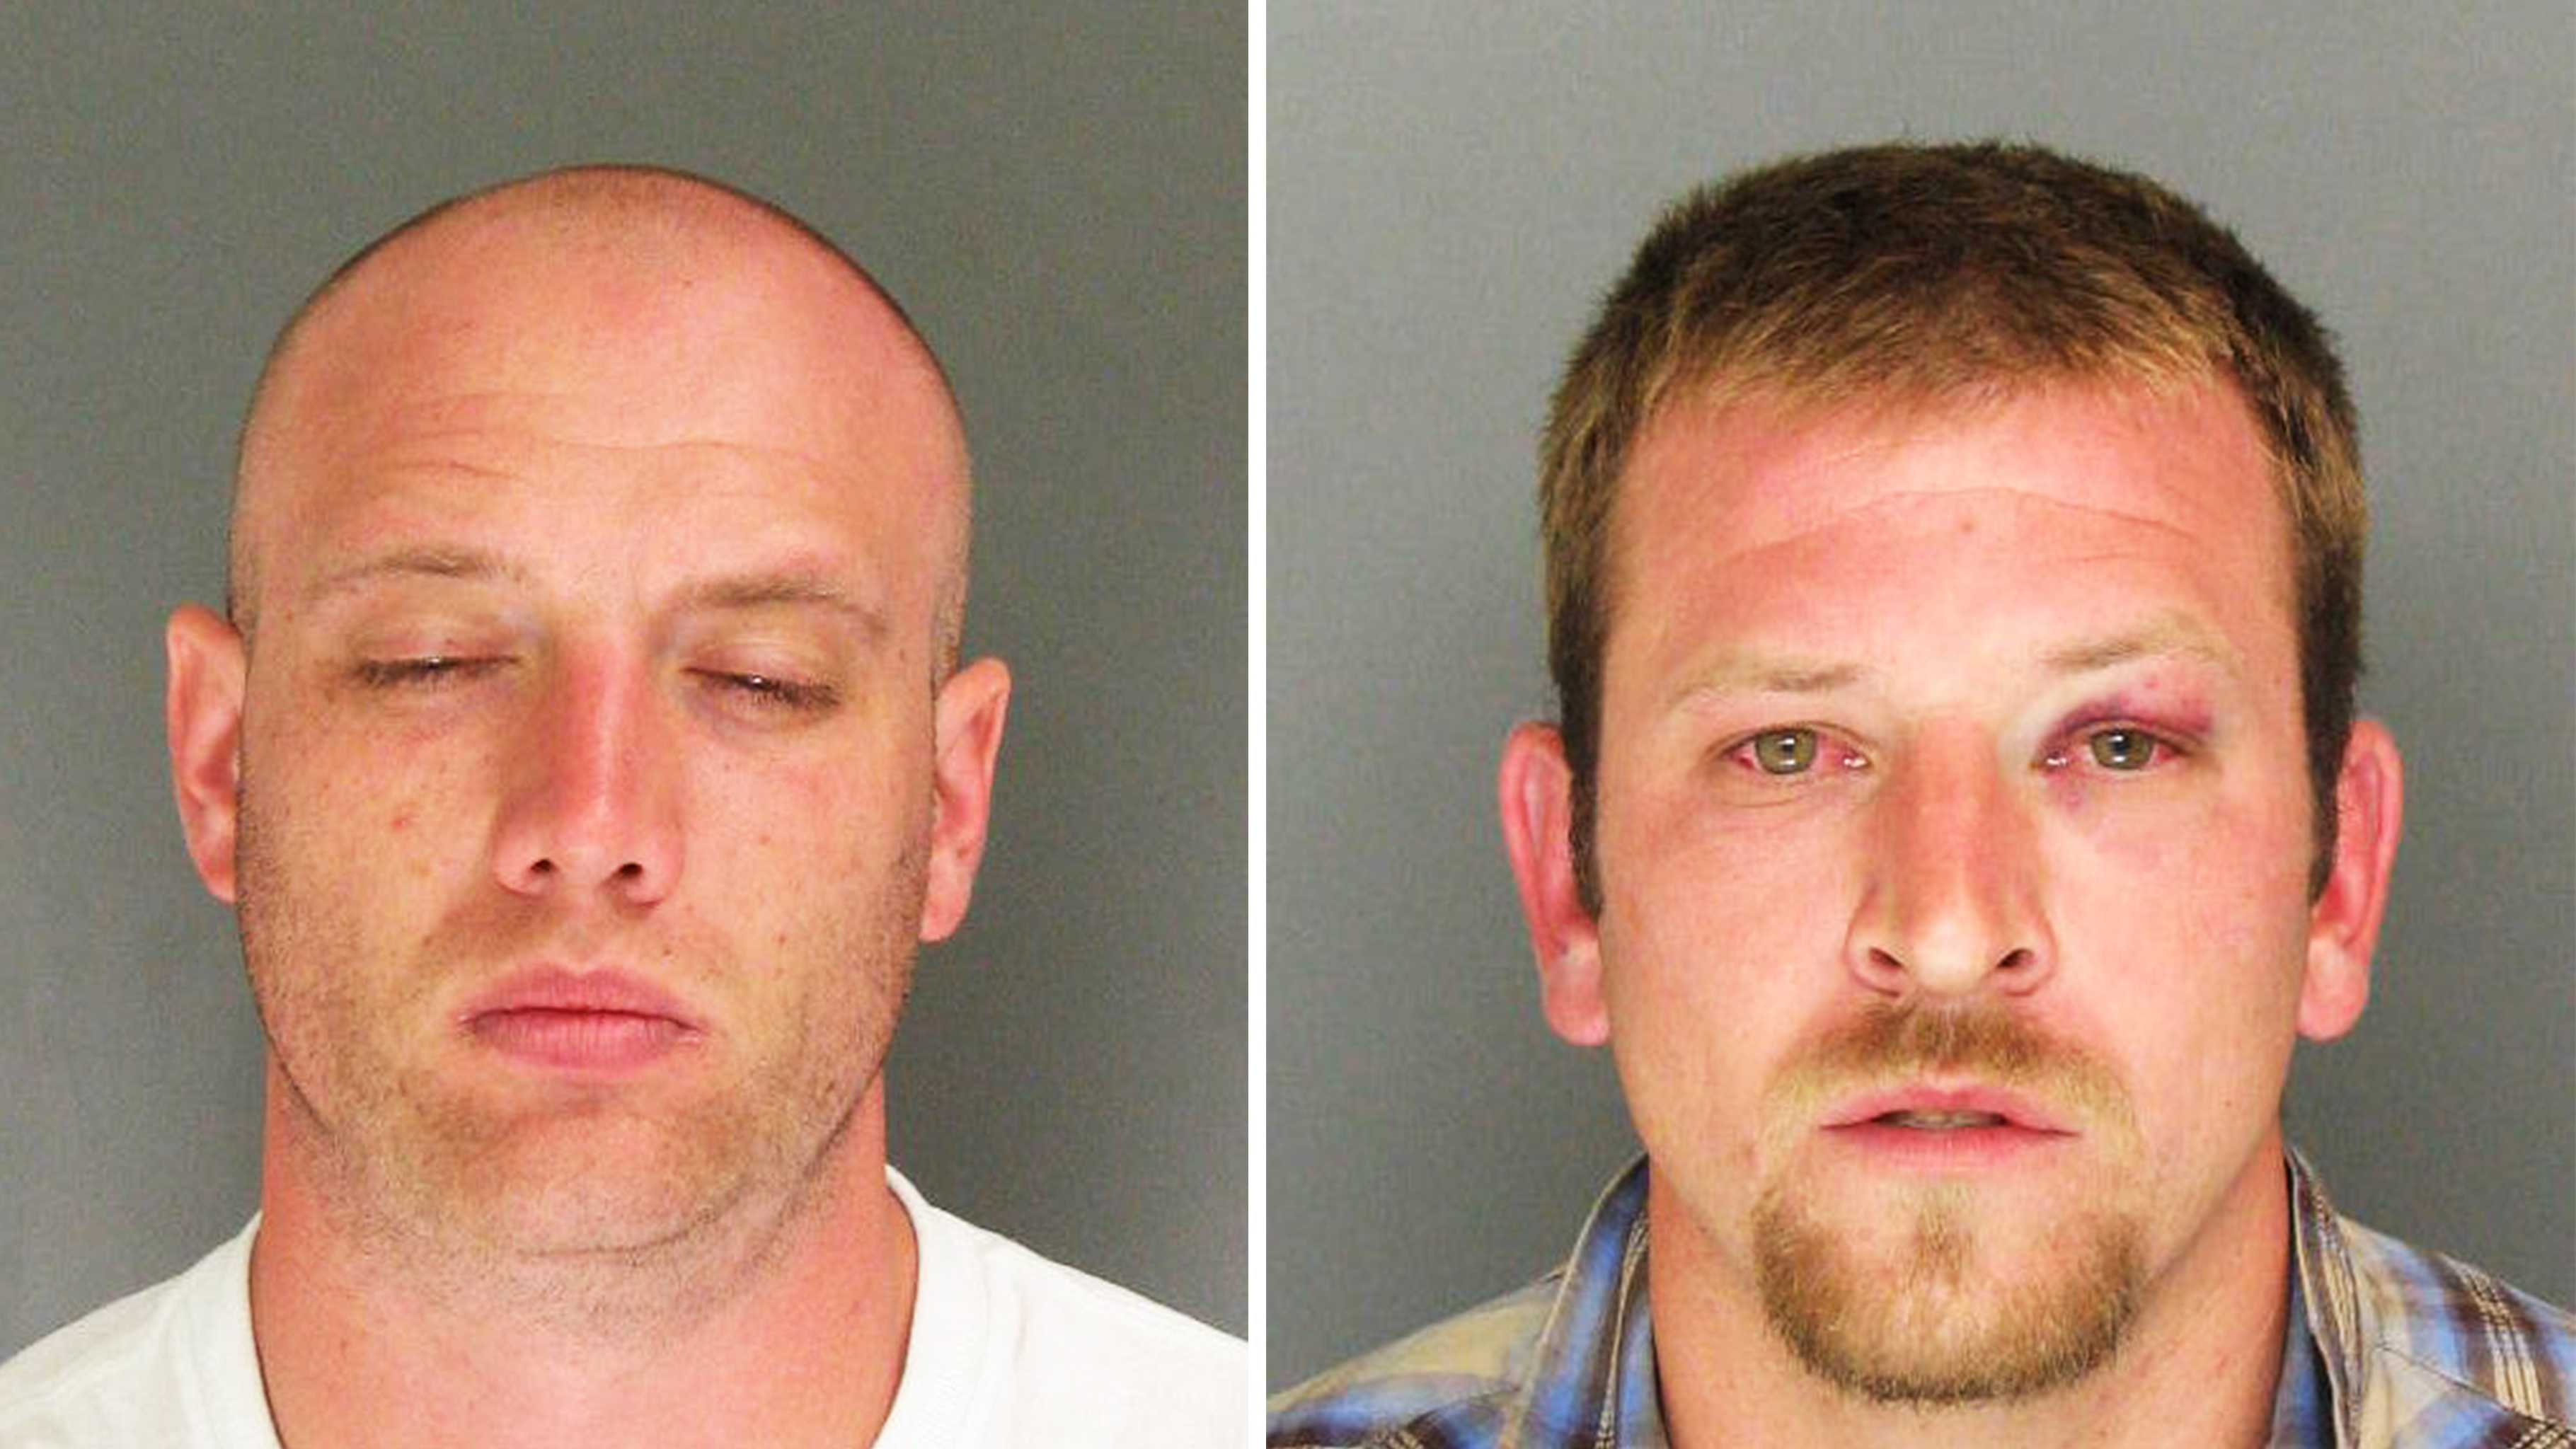 Michael Hague, left, was arrested.Dino Moschetti, right, is wanted by the sheriff.